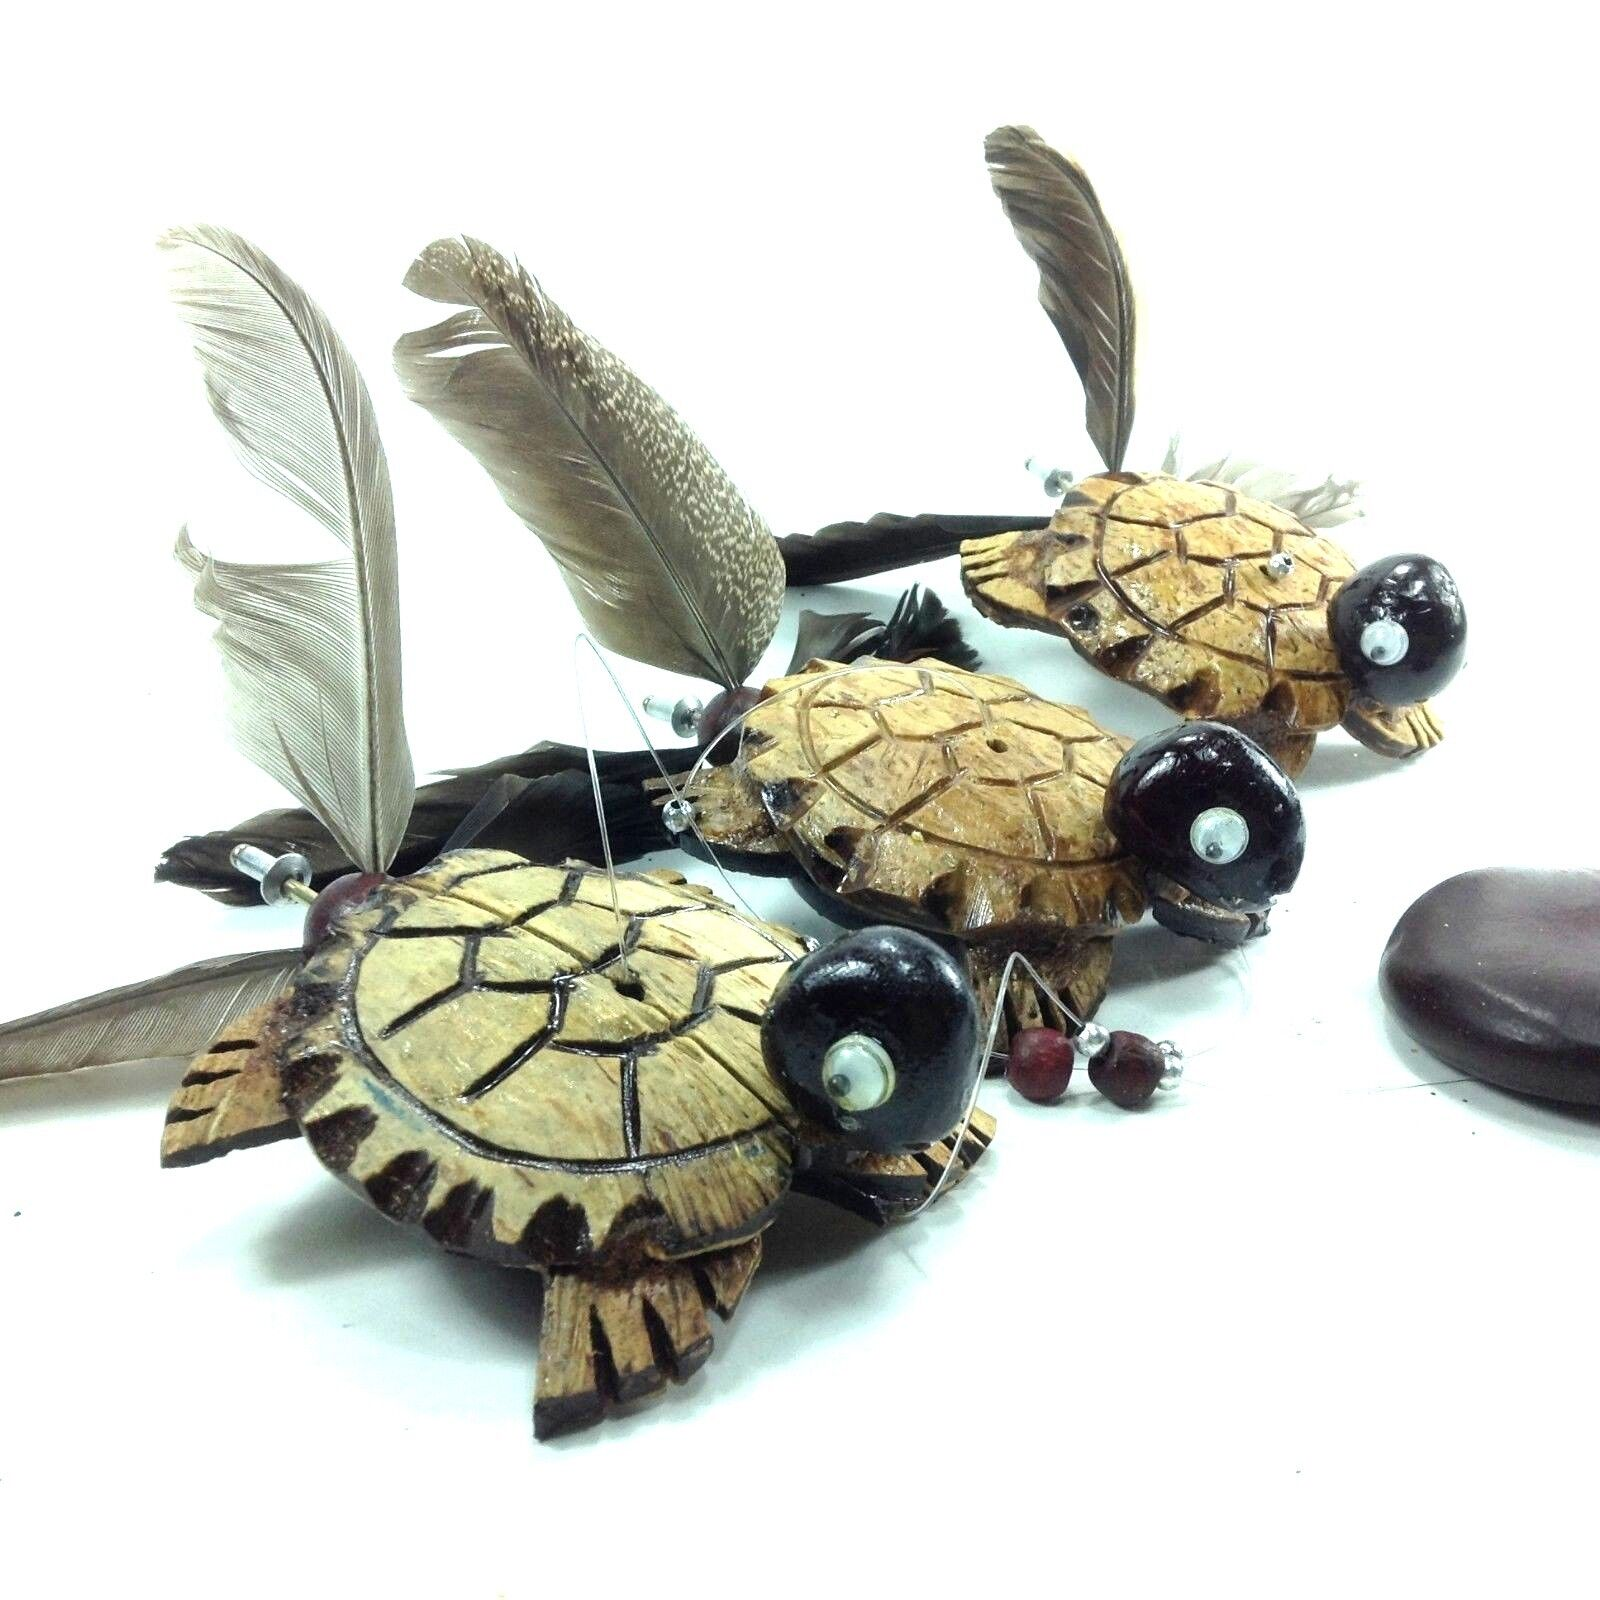 Hanging wind spinner patio wooden animal statue chime homedecor souvenir Turtle